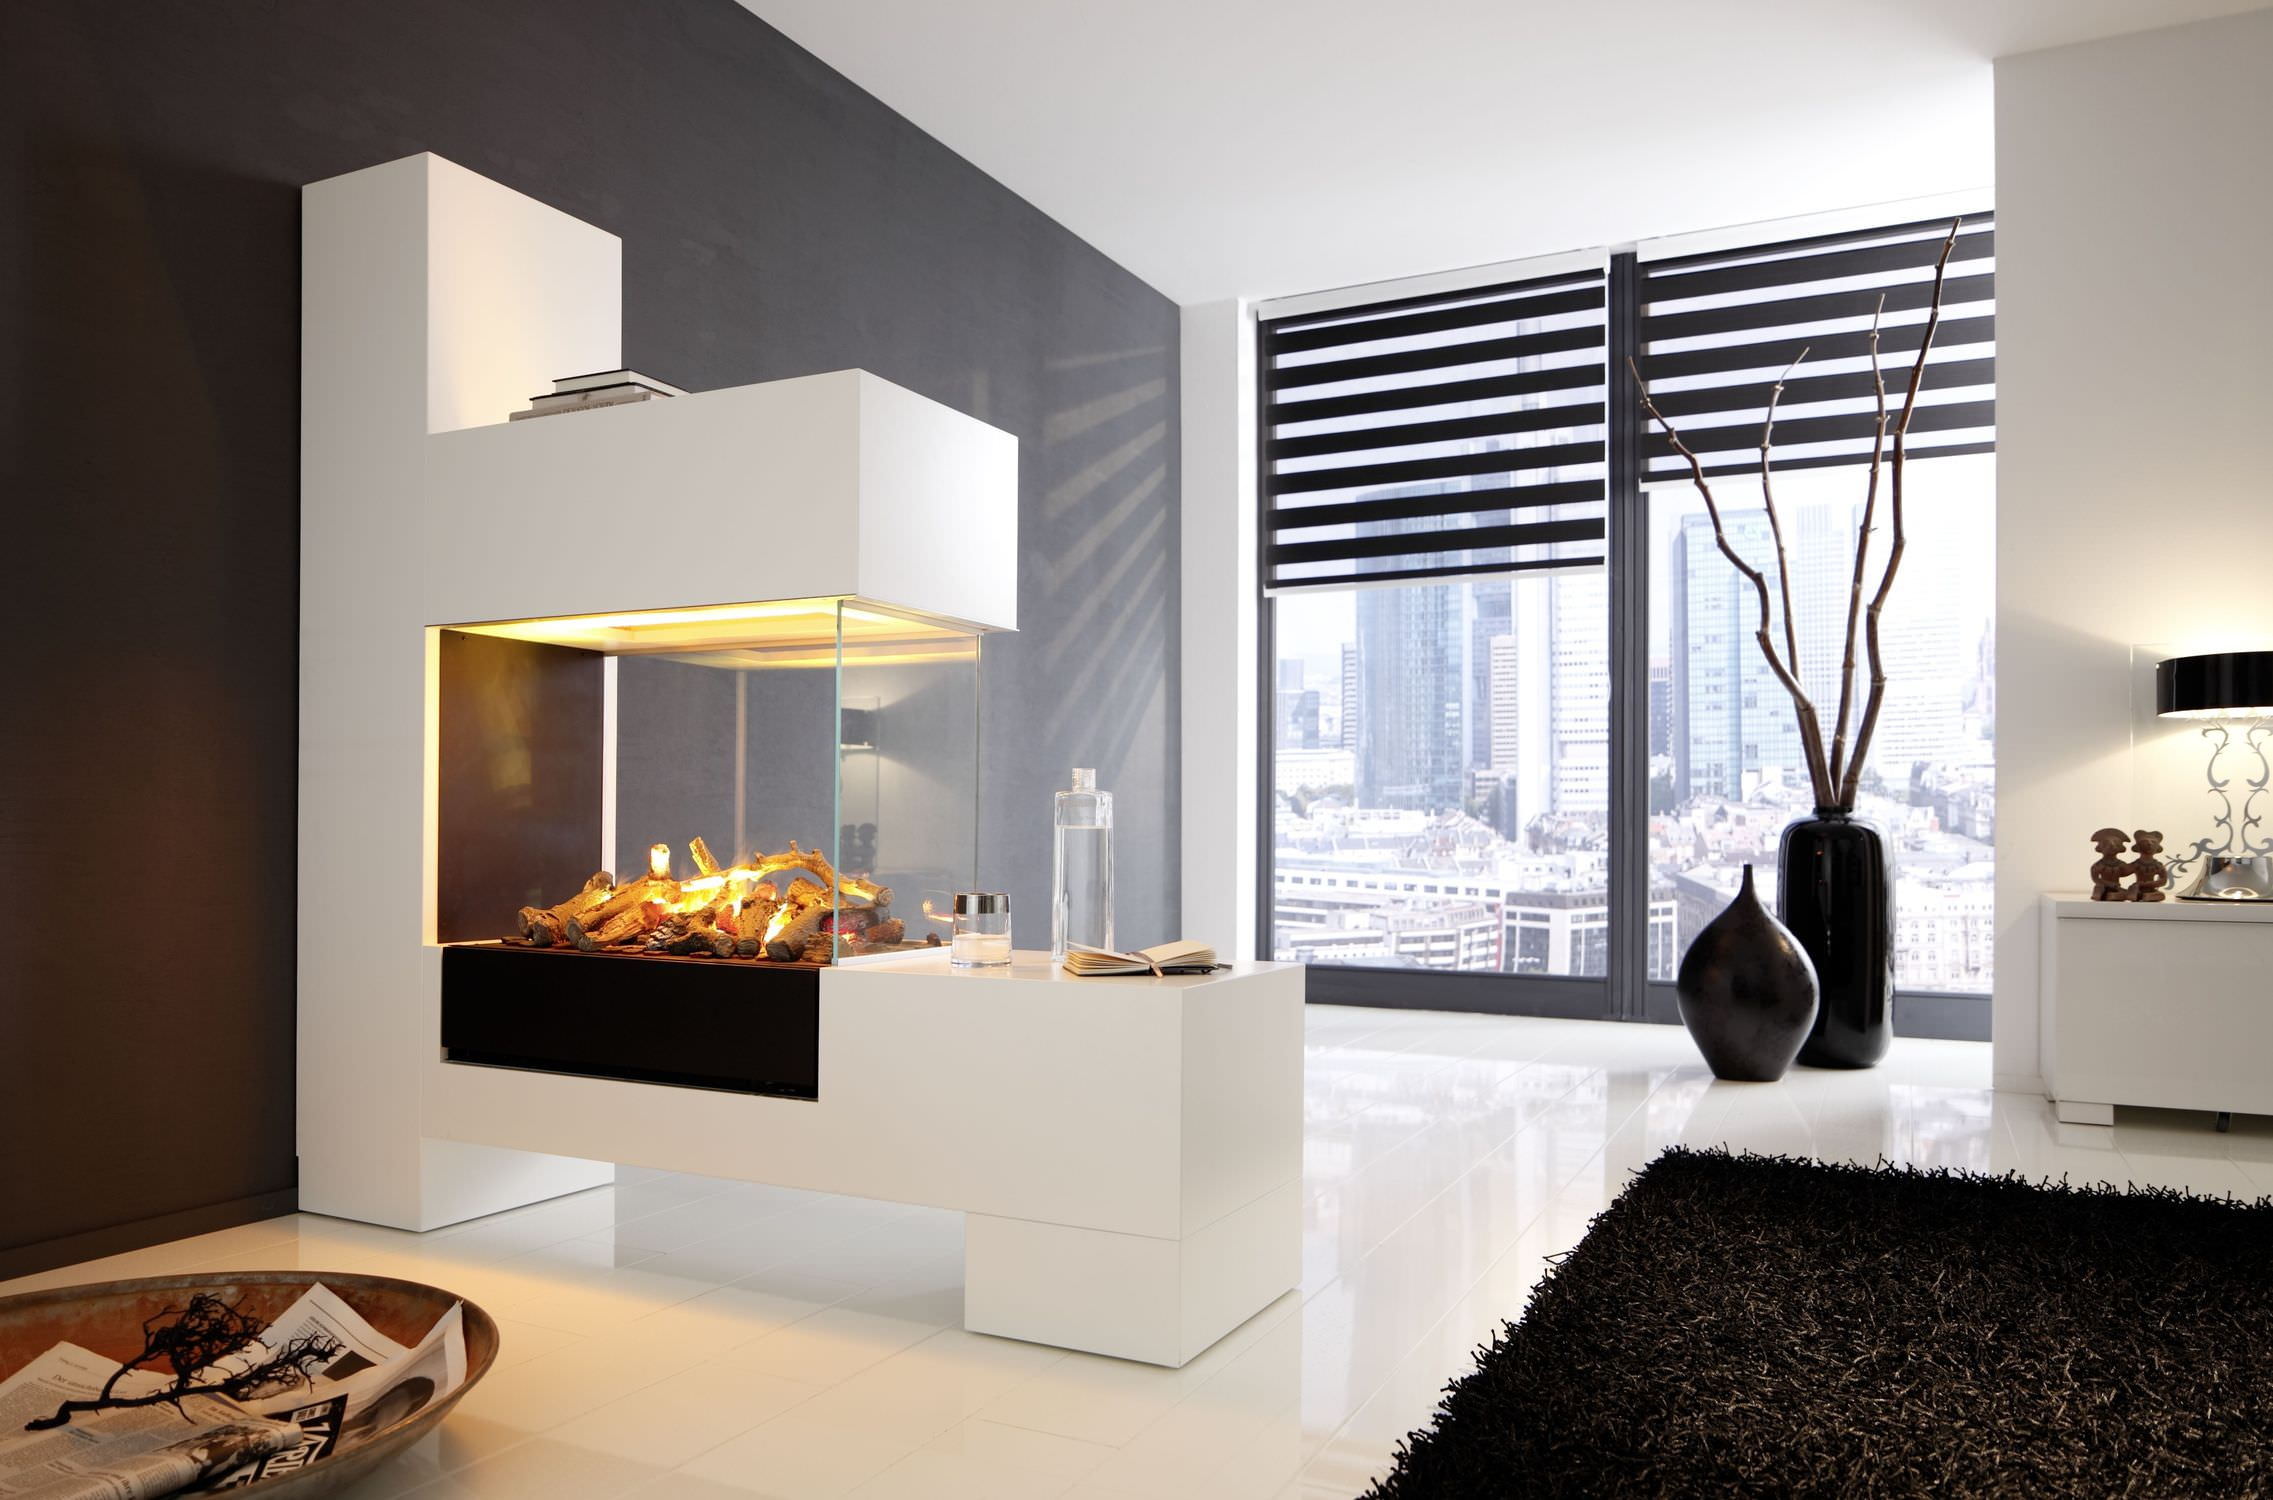 Fireplace Design Ideas living room design ideas with fireplace Clean And Simple Fireplace Idea